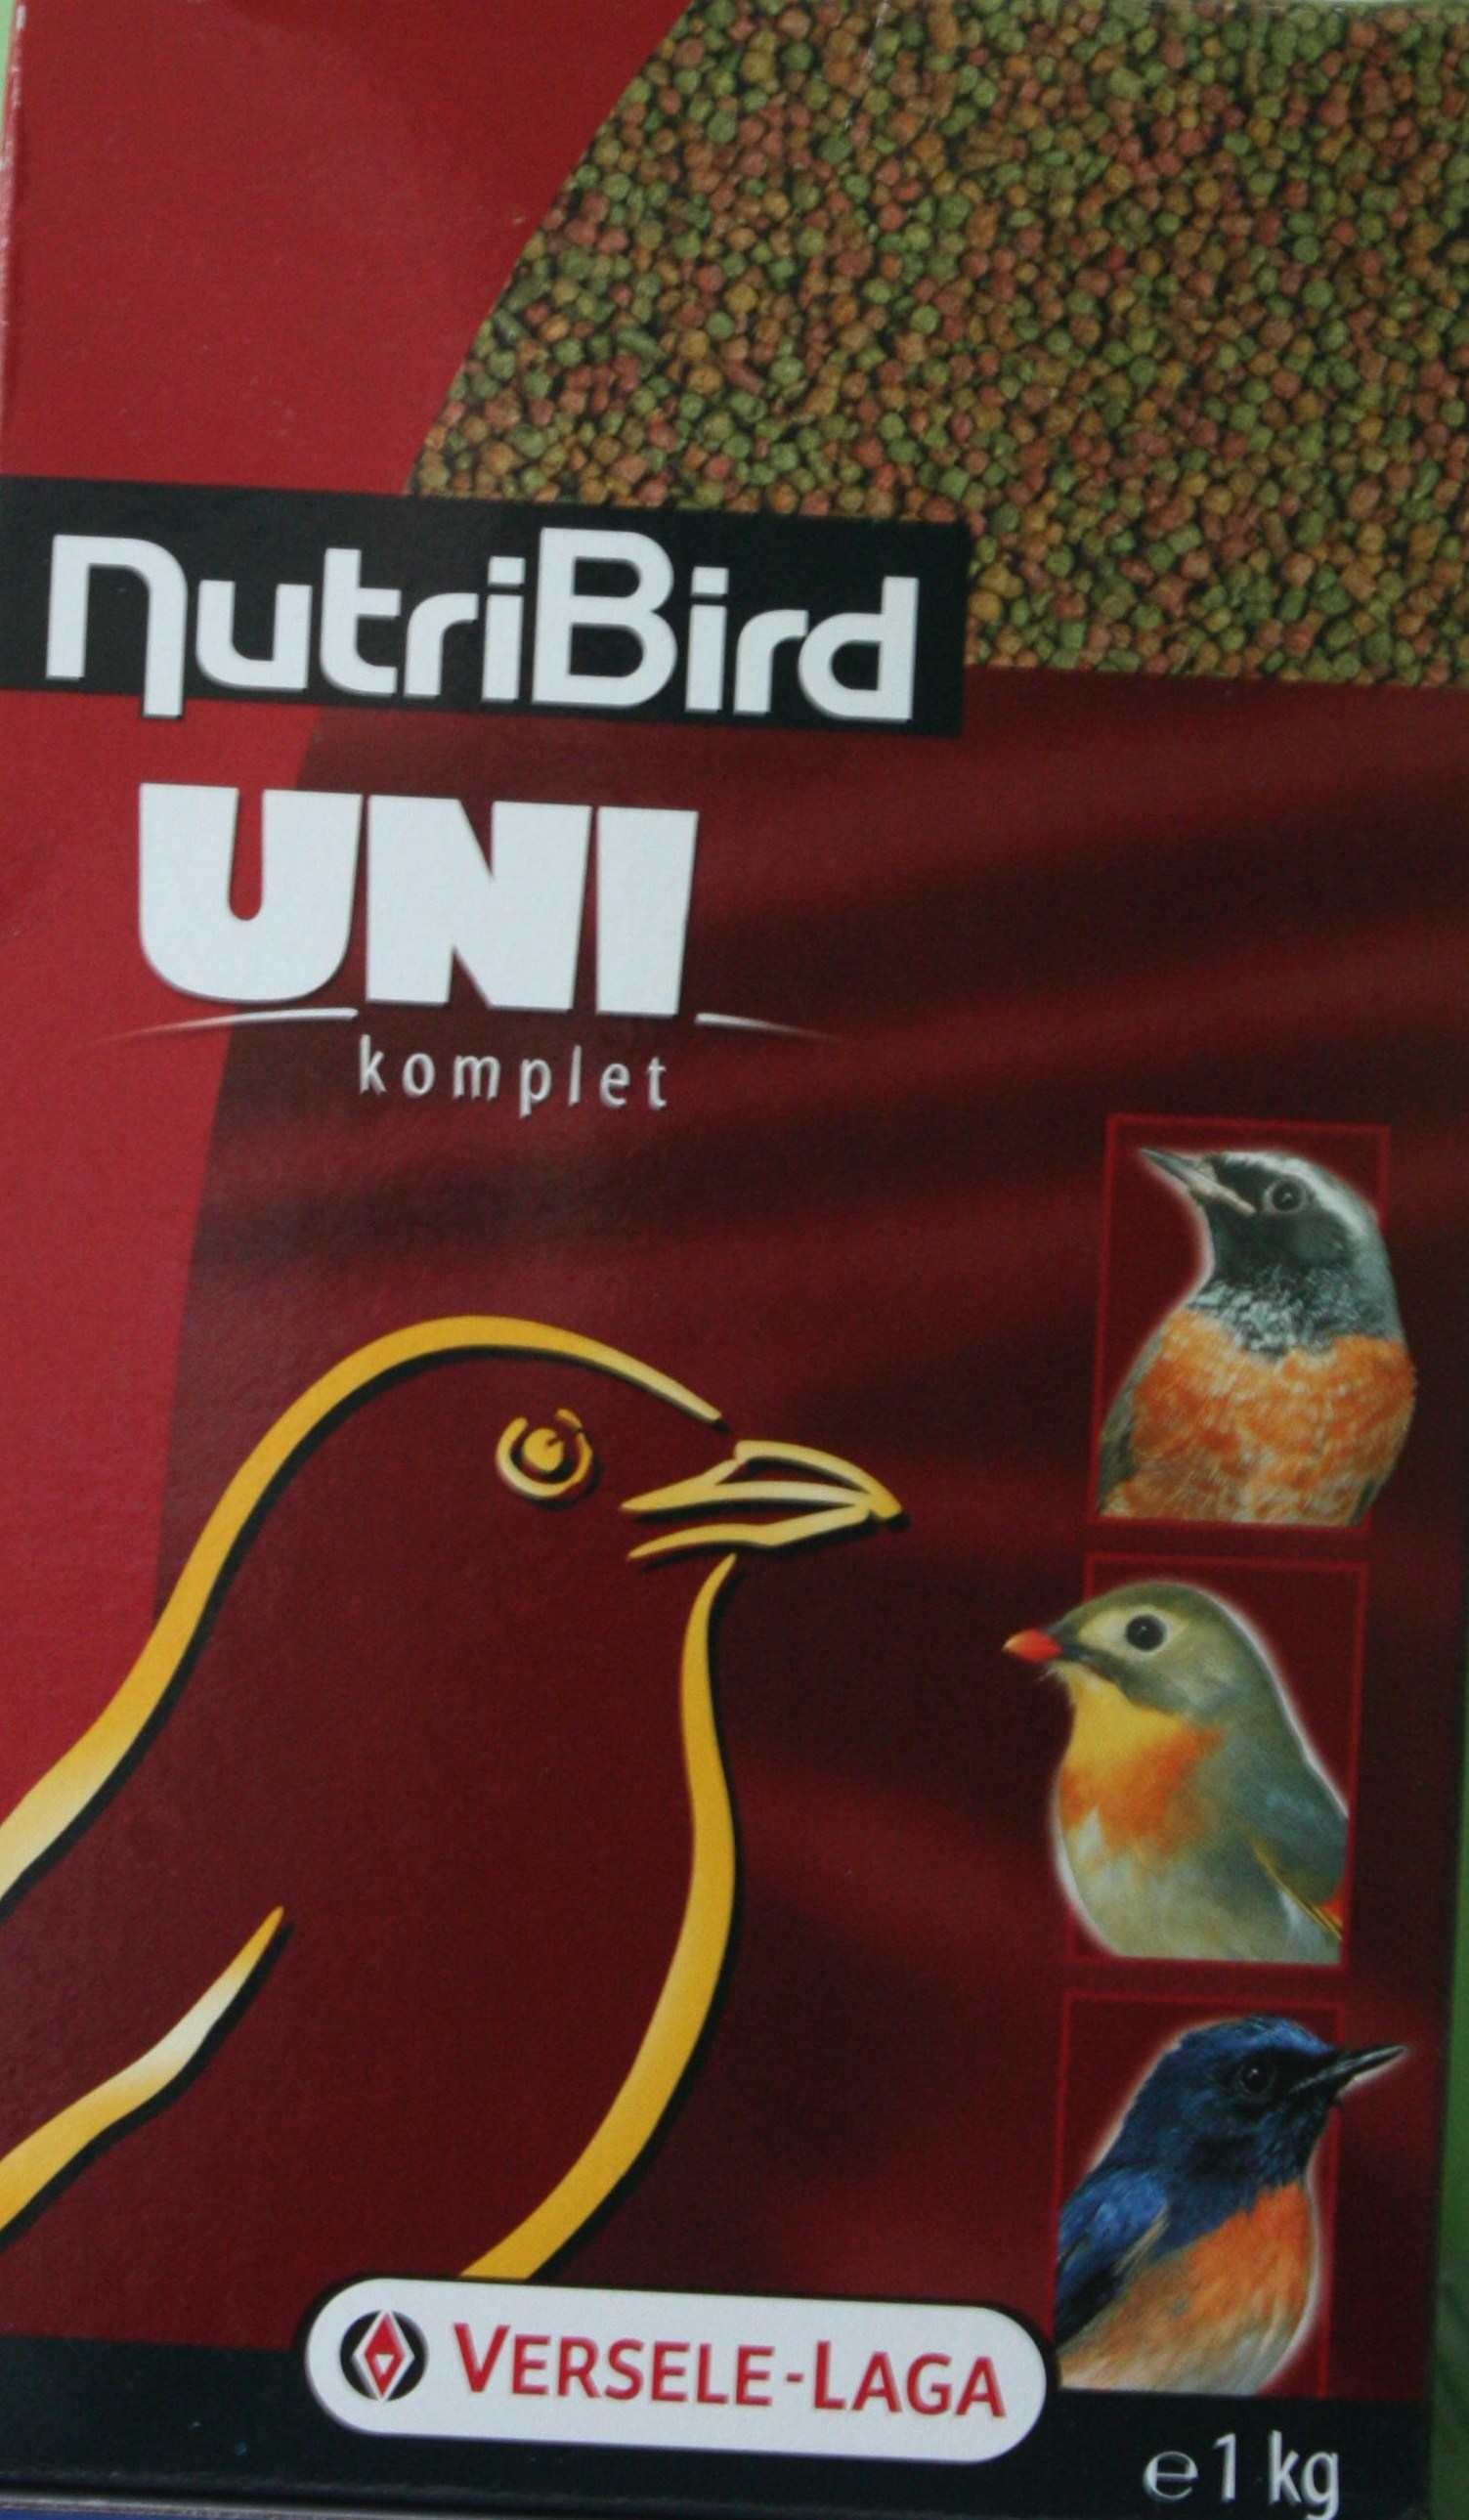 NUTRIBIRD UNI COMPLET Insectivores